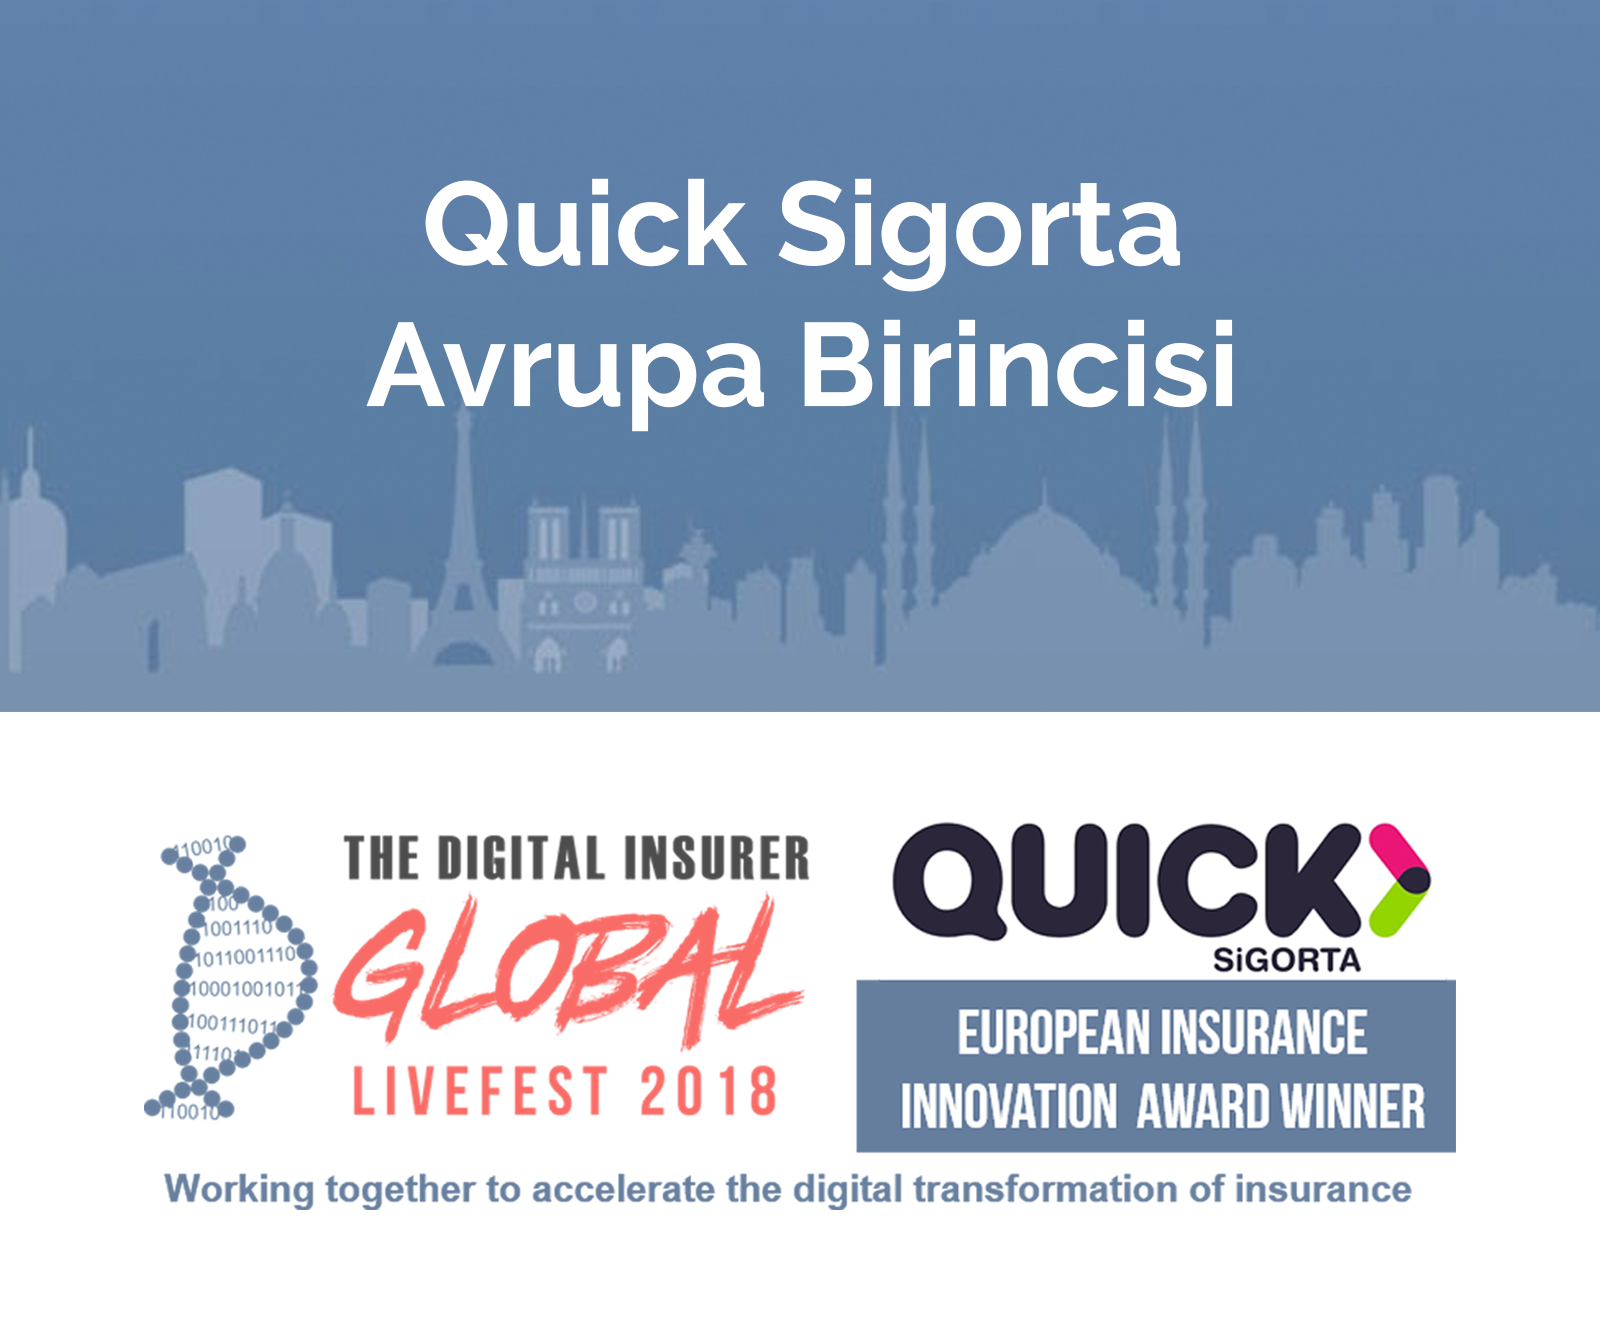 Quick Sigorta Avrupa Birincisi The Digital Insurer